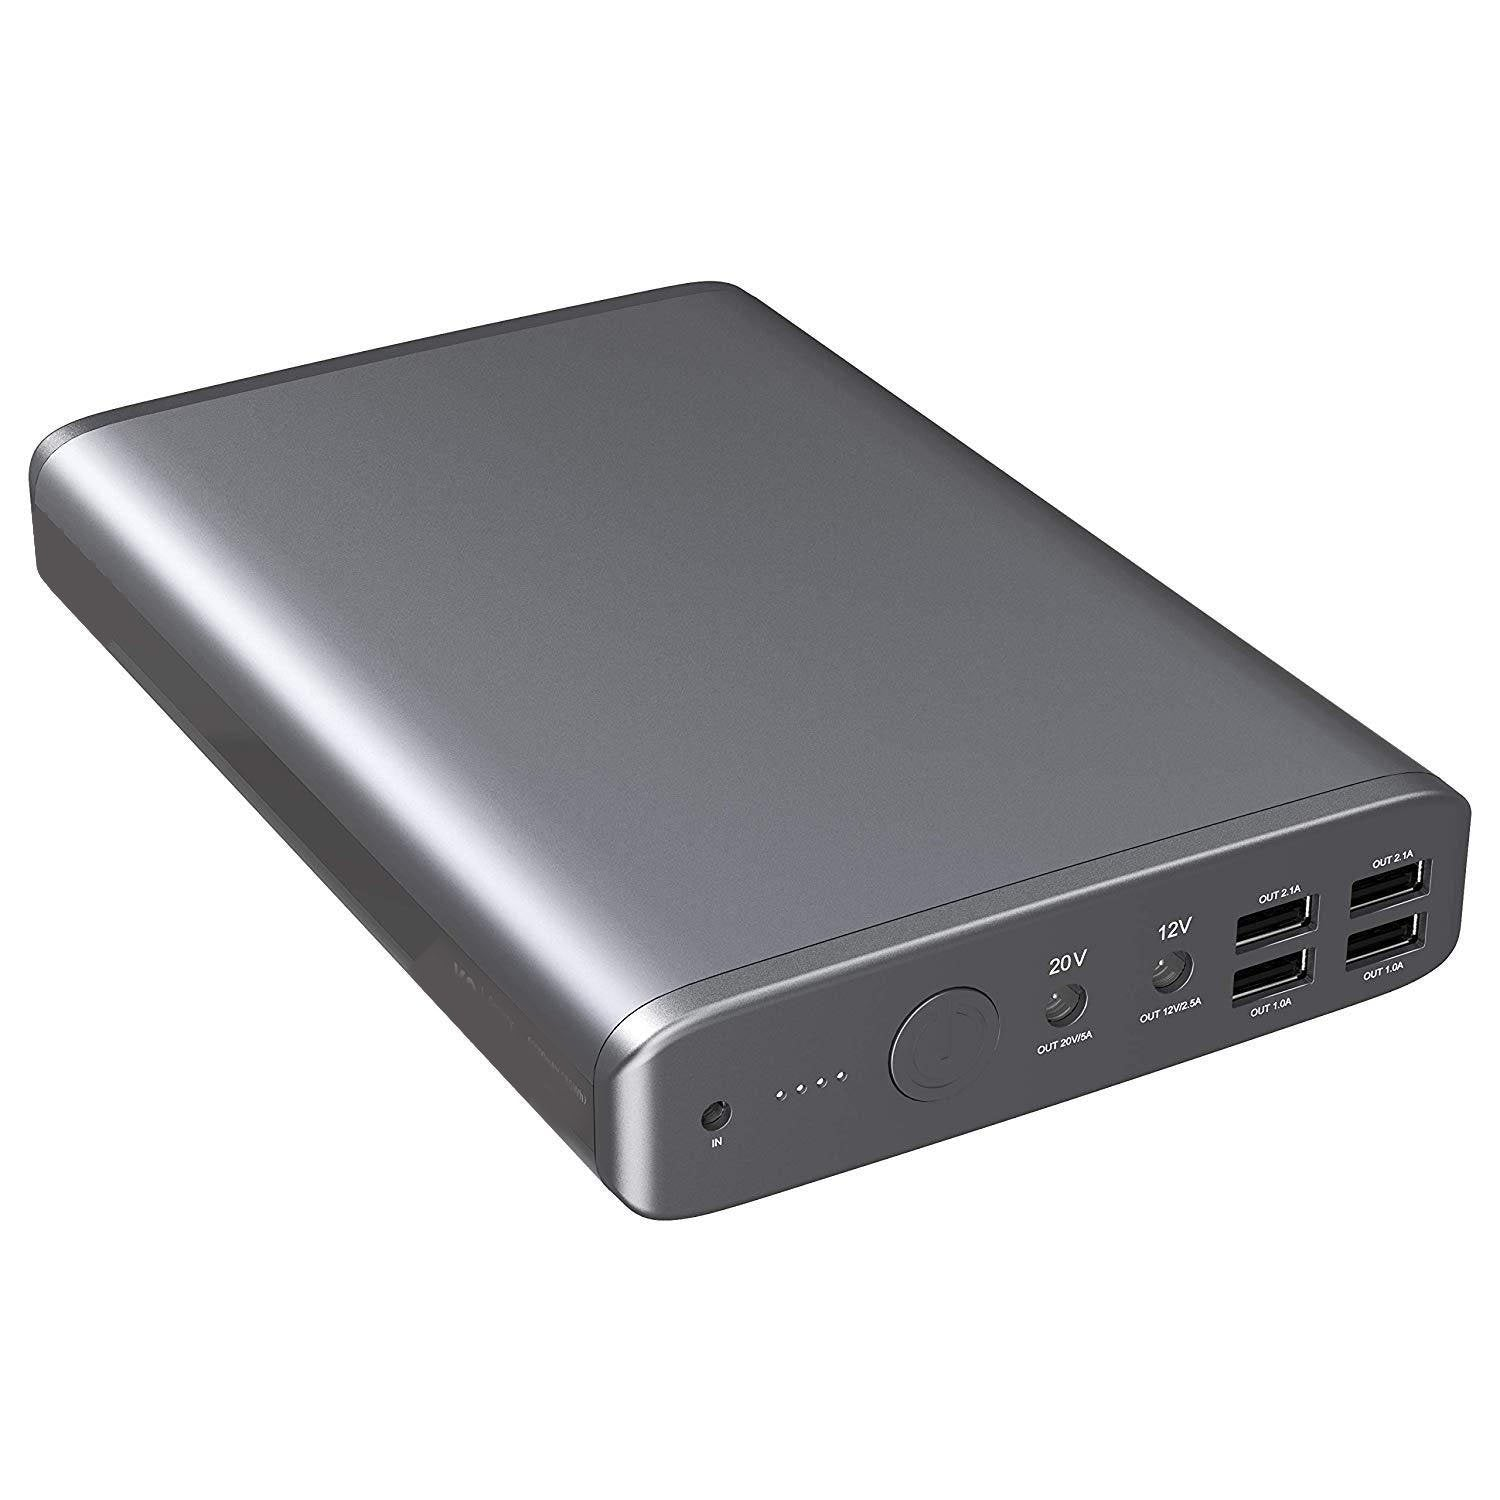 Portable Laptop Power Bank 185Wh/50000mAh